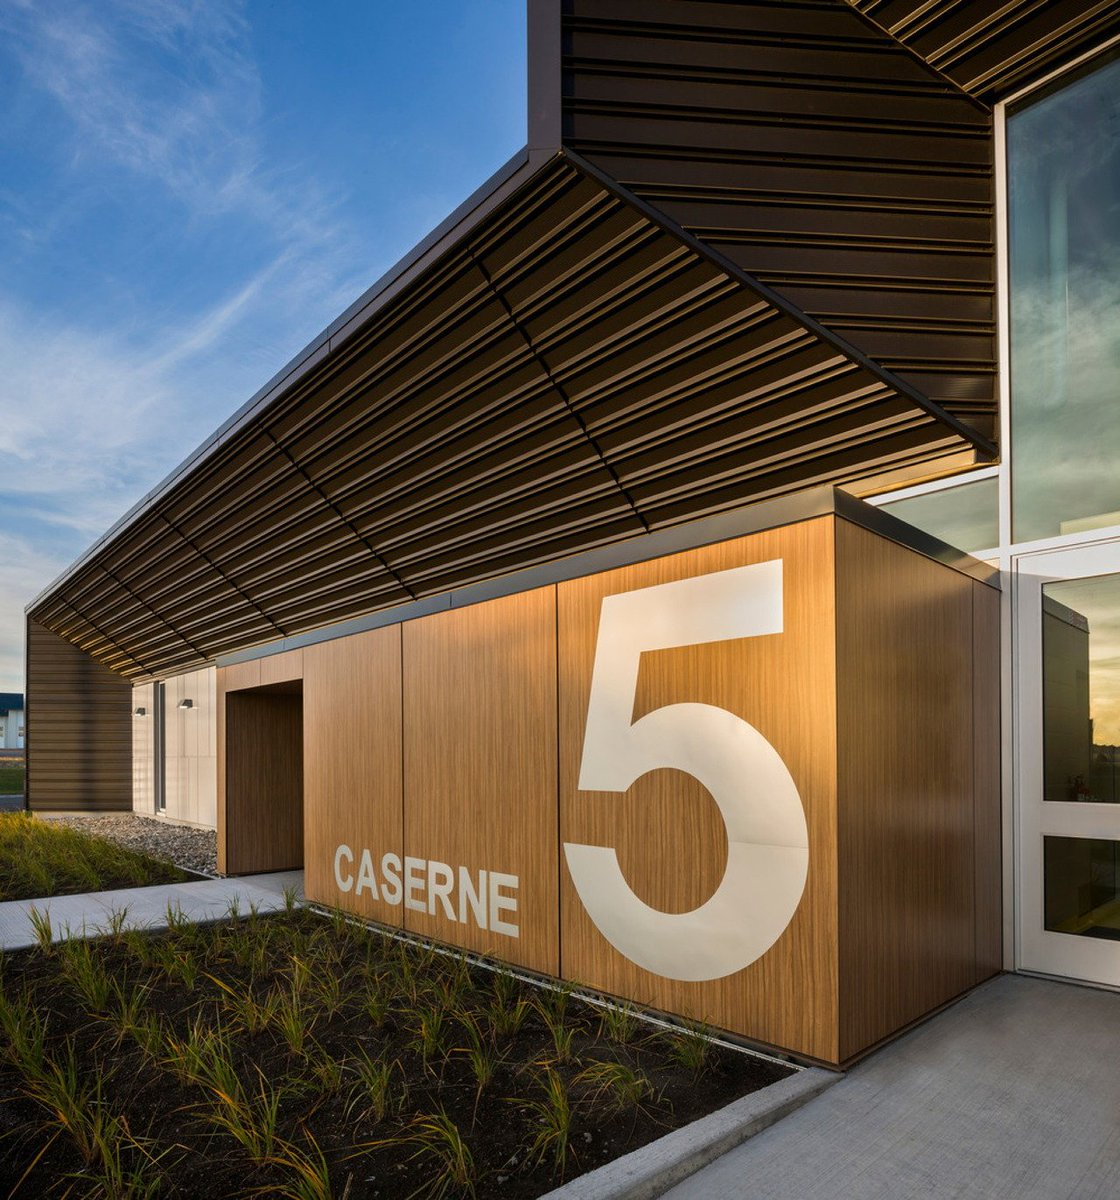 08-caserne-no5-stgm-architects-ccm2-architects-foto-stephane-groleau